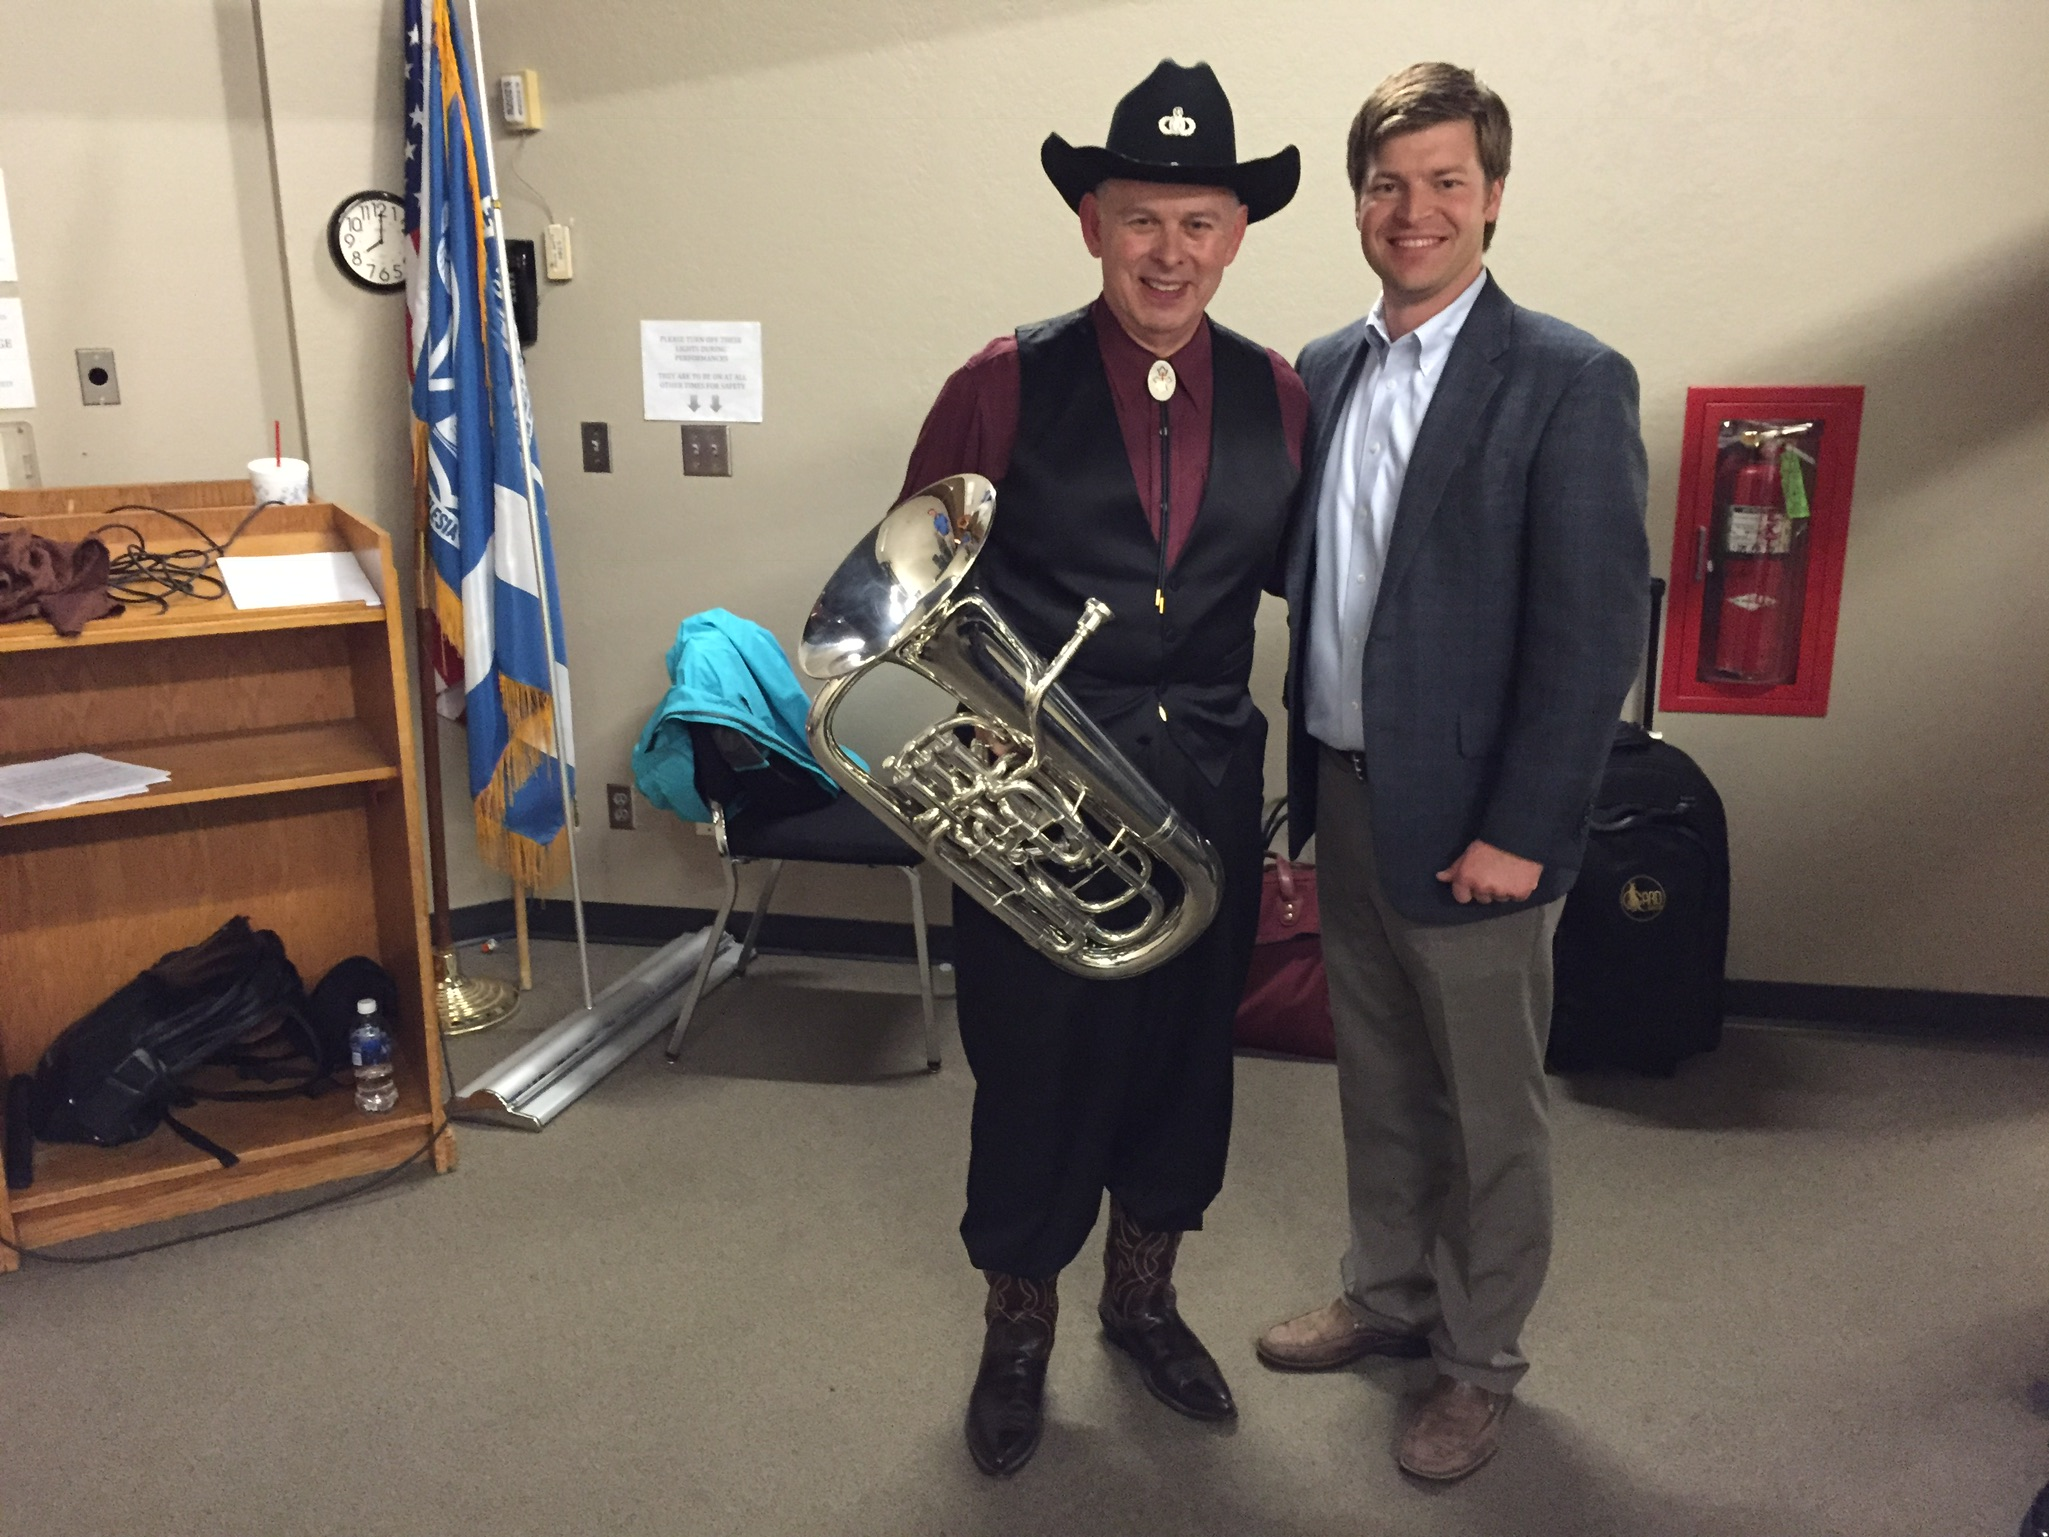 """Backstage after Dr. Bowman's performance of """"Yellow Rose of Texas""""."""